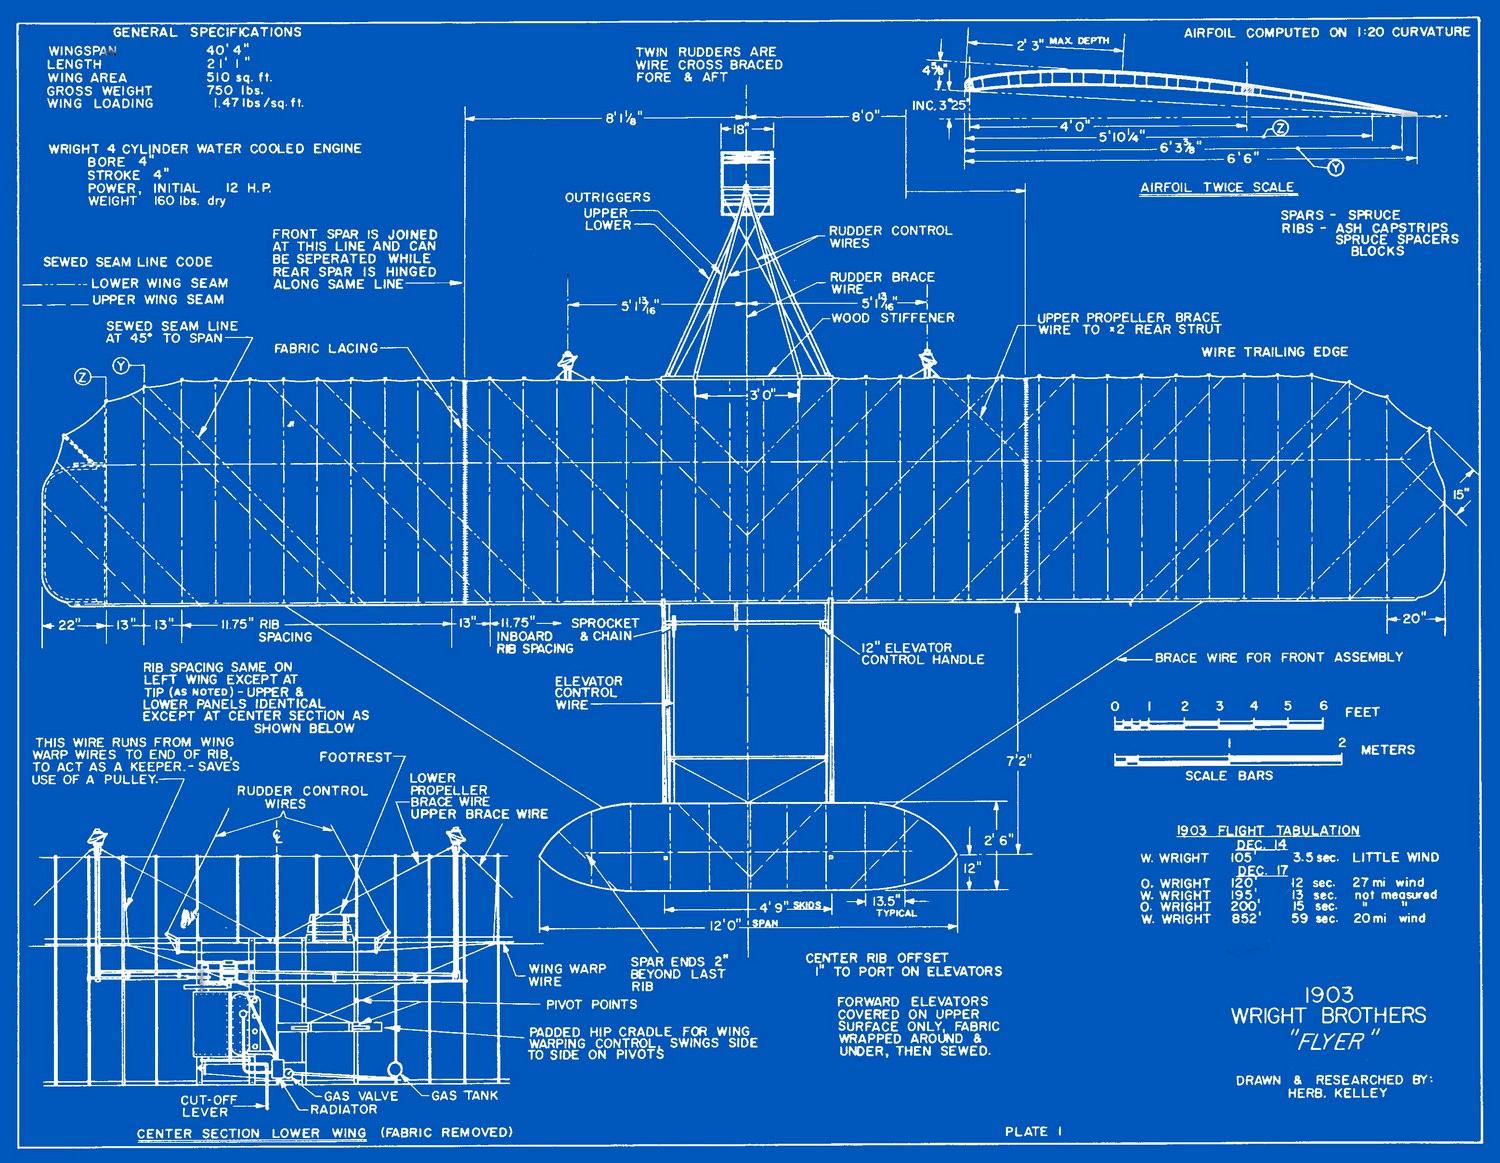 hight resolution of measured drawings of the 1903 wright flyer plate 1 top view